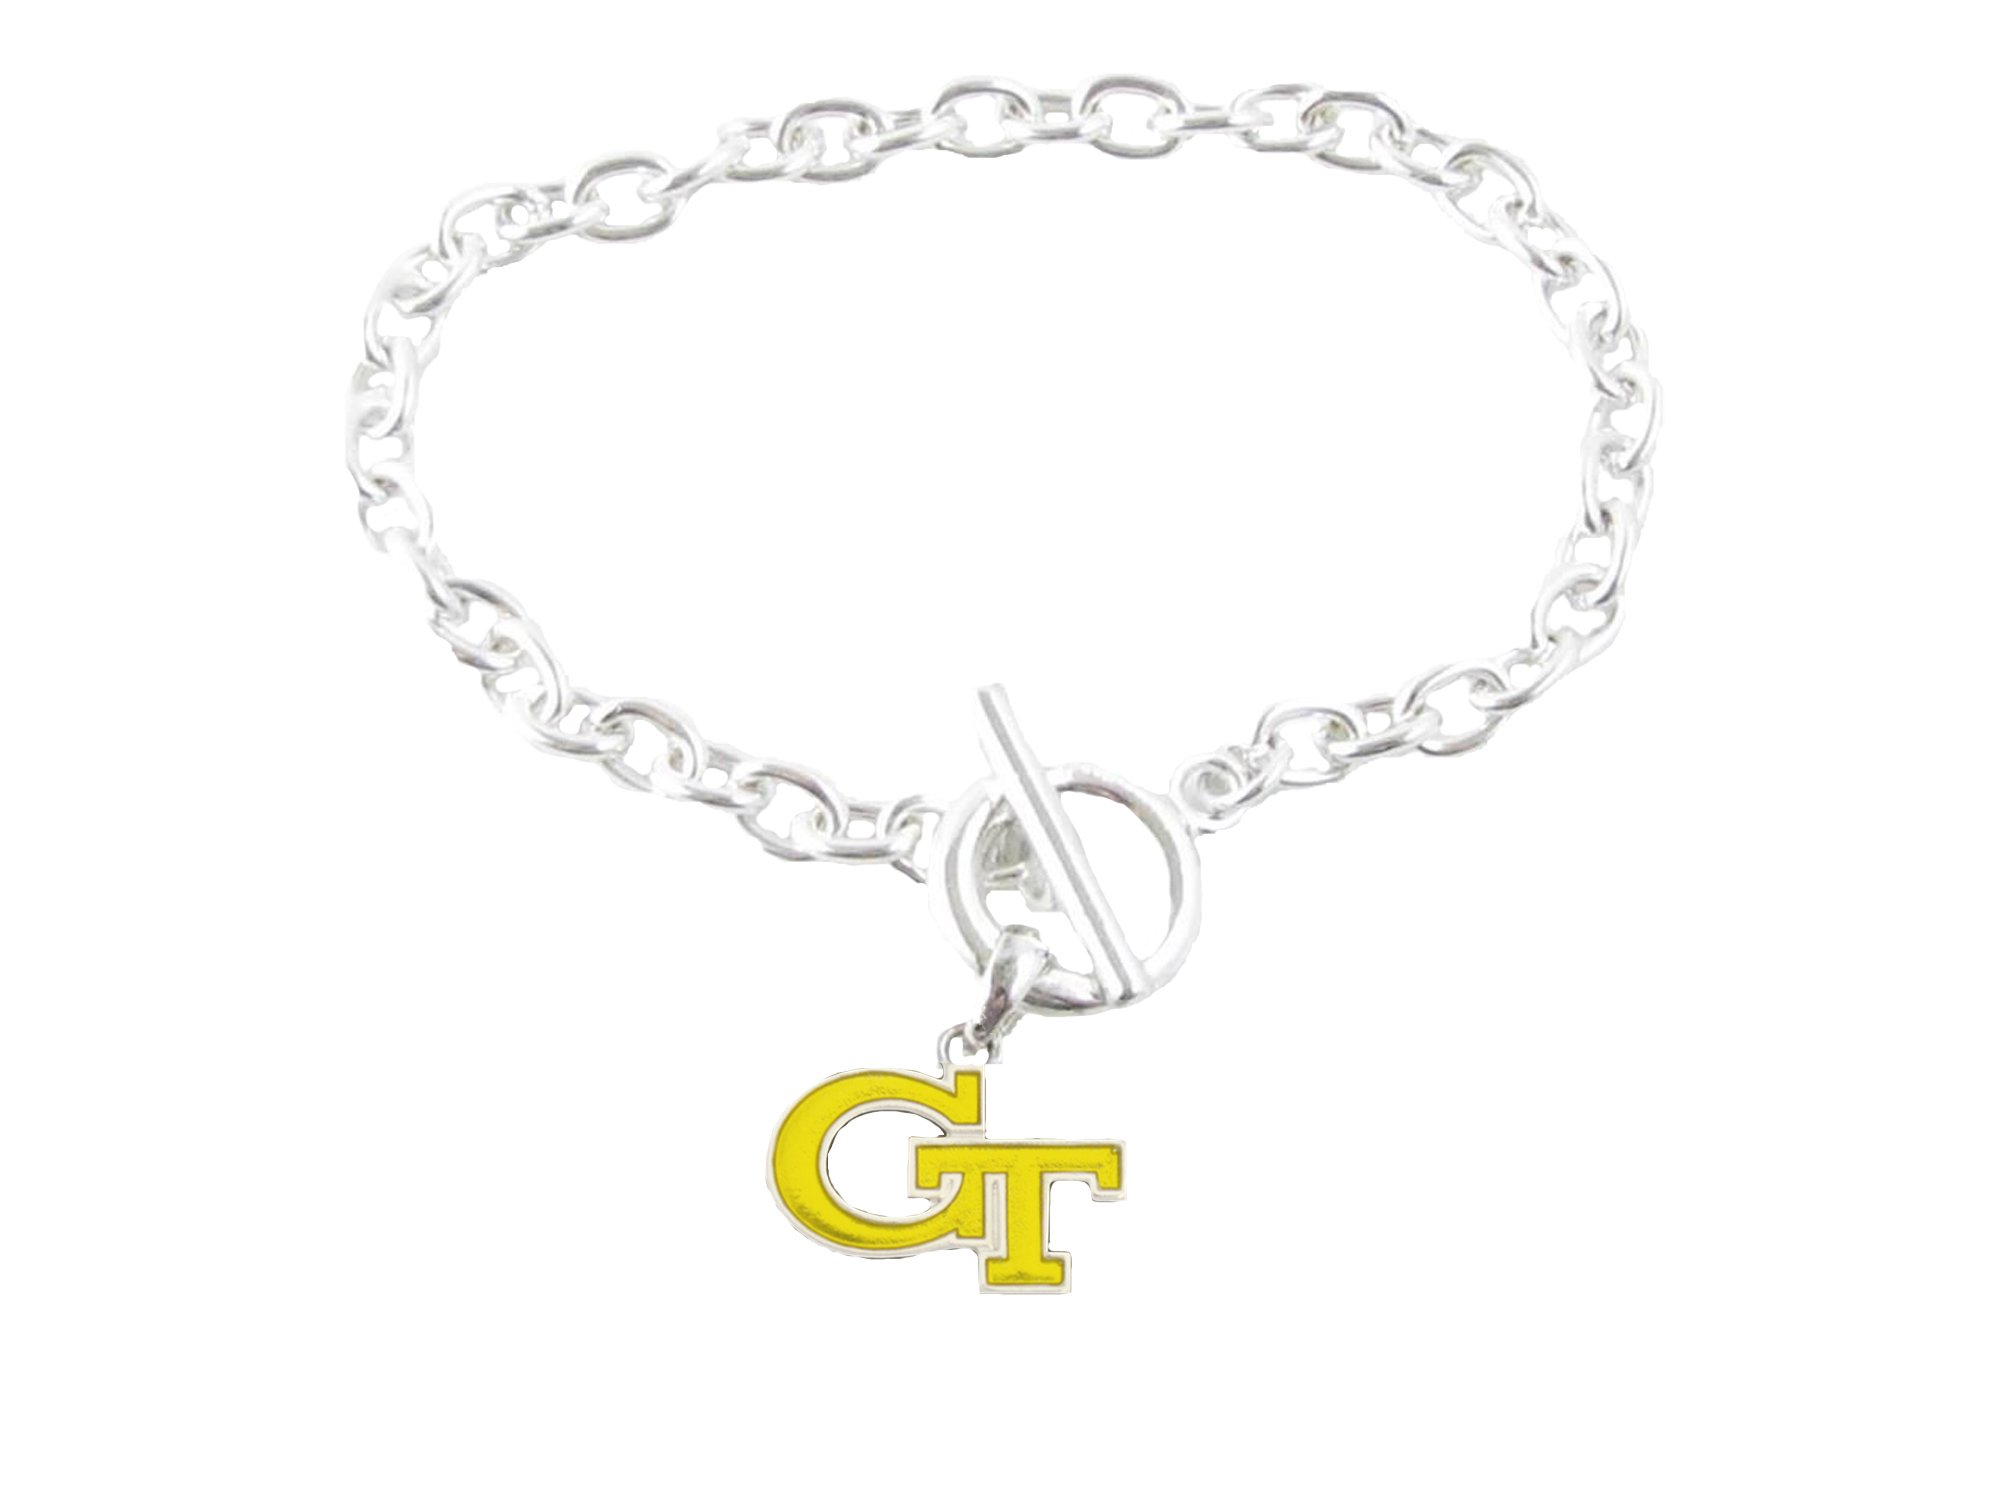 Sports Accessory Store Georgia Tech Yellow Jackets Iridescent Gold Silver Charm Toggle Bracelet Jewelry by Sports Accessory Store